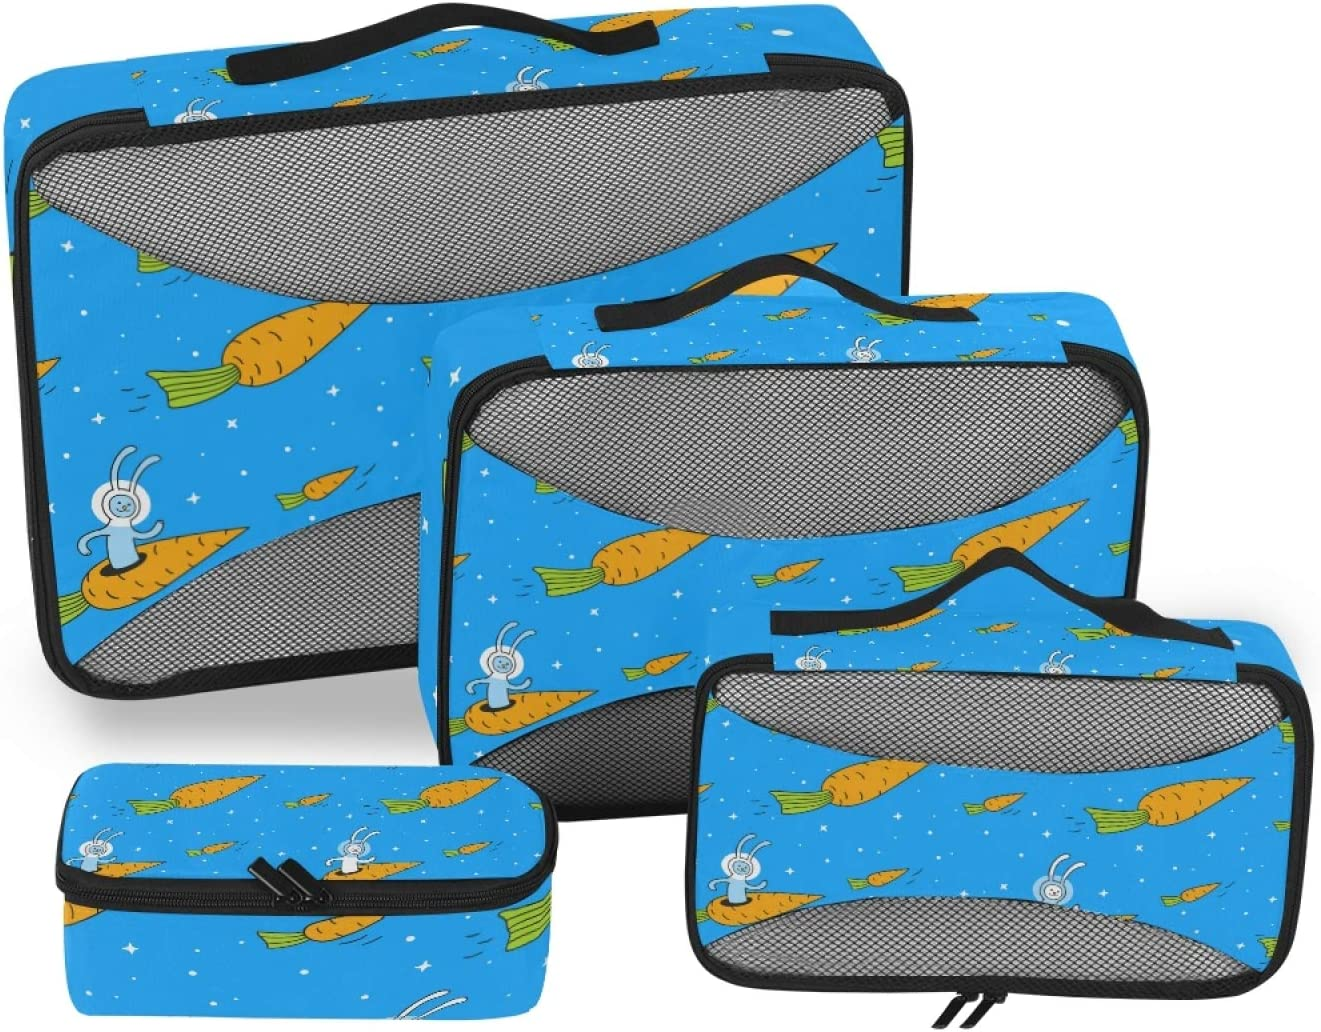 Rabbit Carrot Packing Cubes Phoenix Mall 4-Pcs Organizer Gifts Travel Accessories S